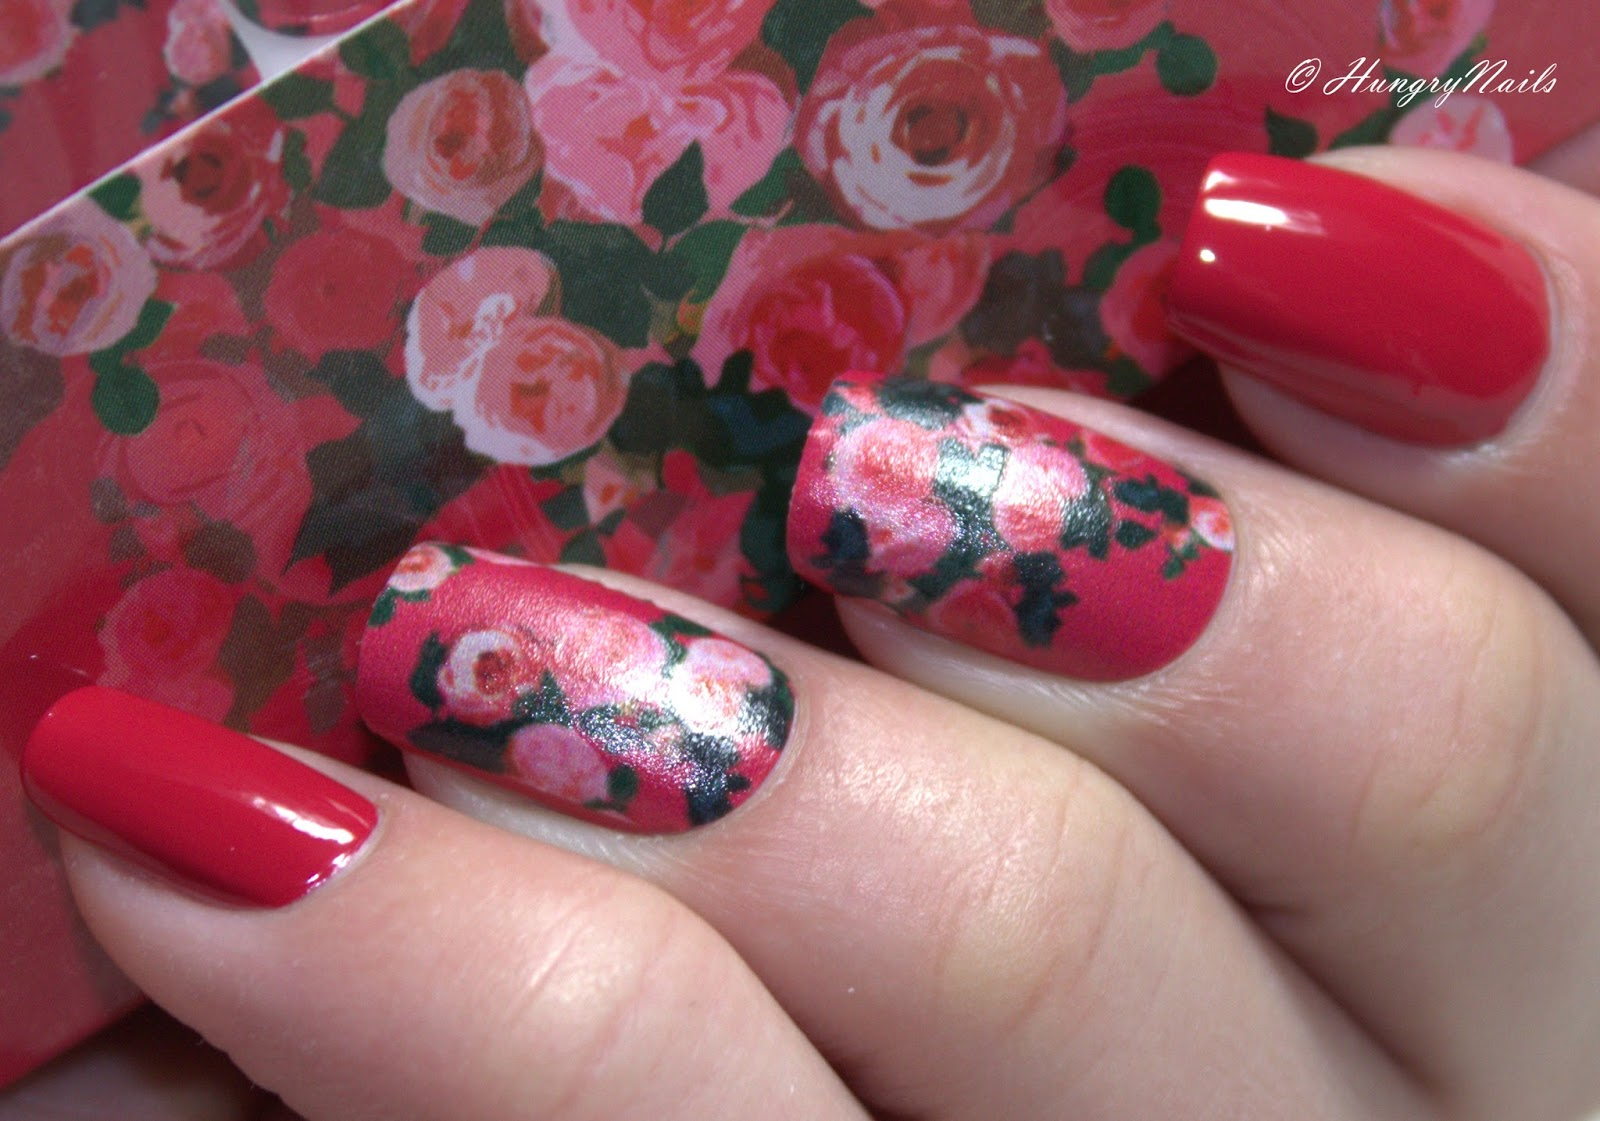 Valentins-Design | Nails in Bloom mit OPI - HungryNails Blog | Die ...